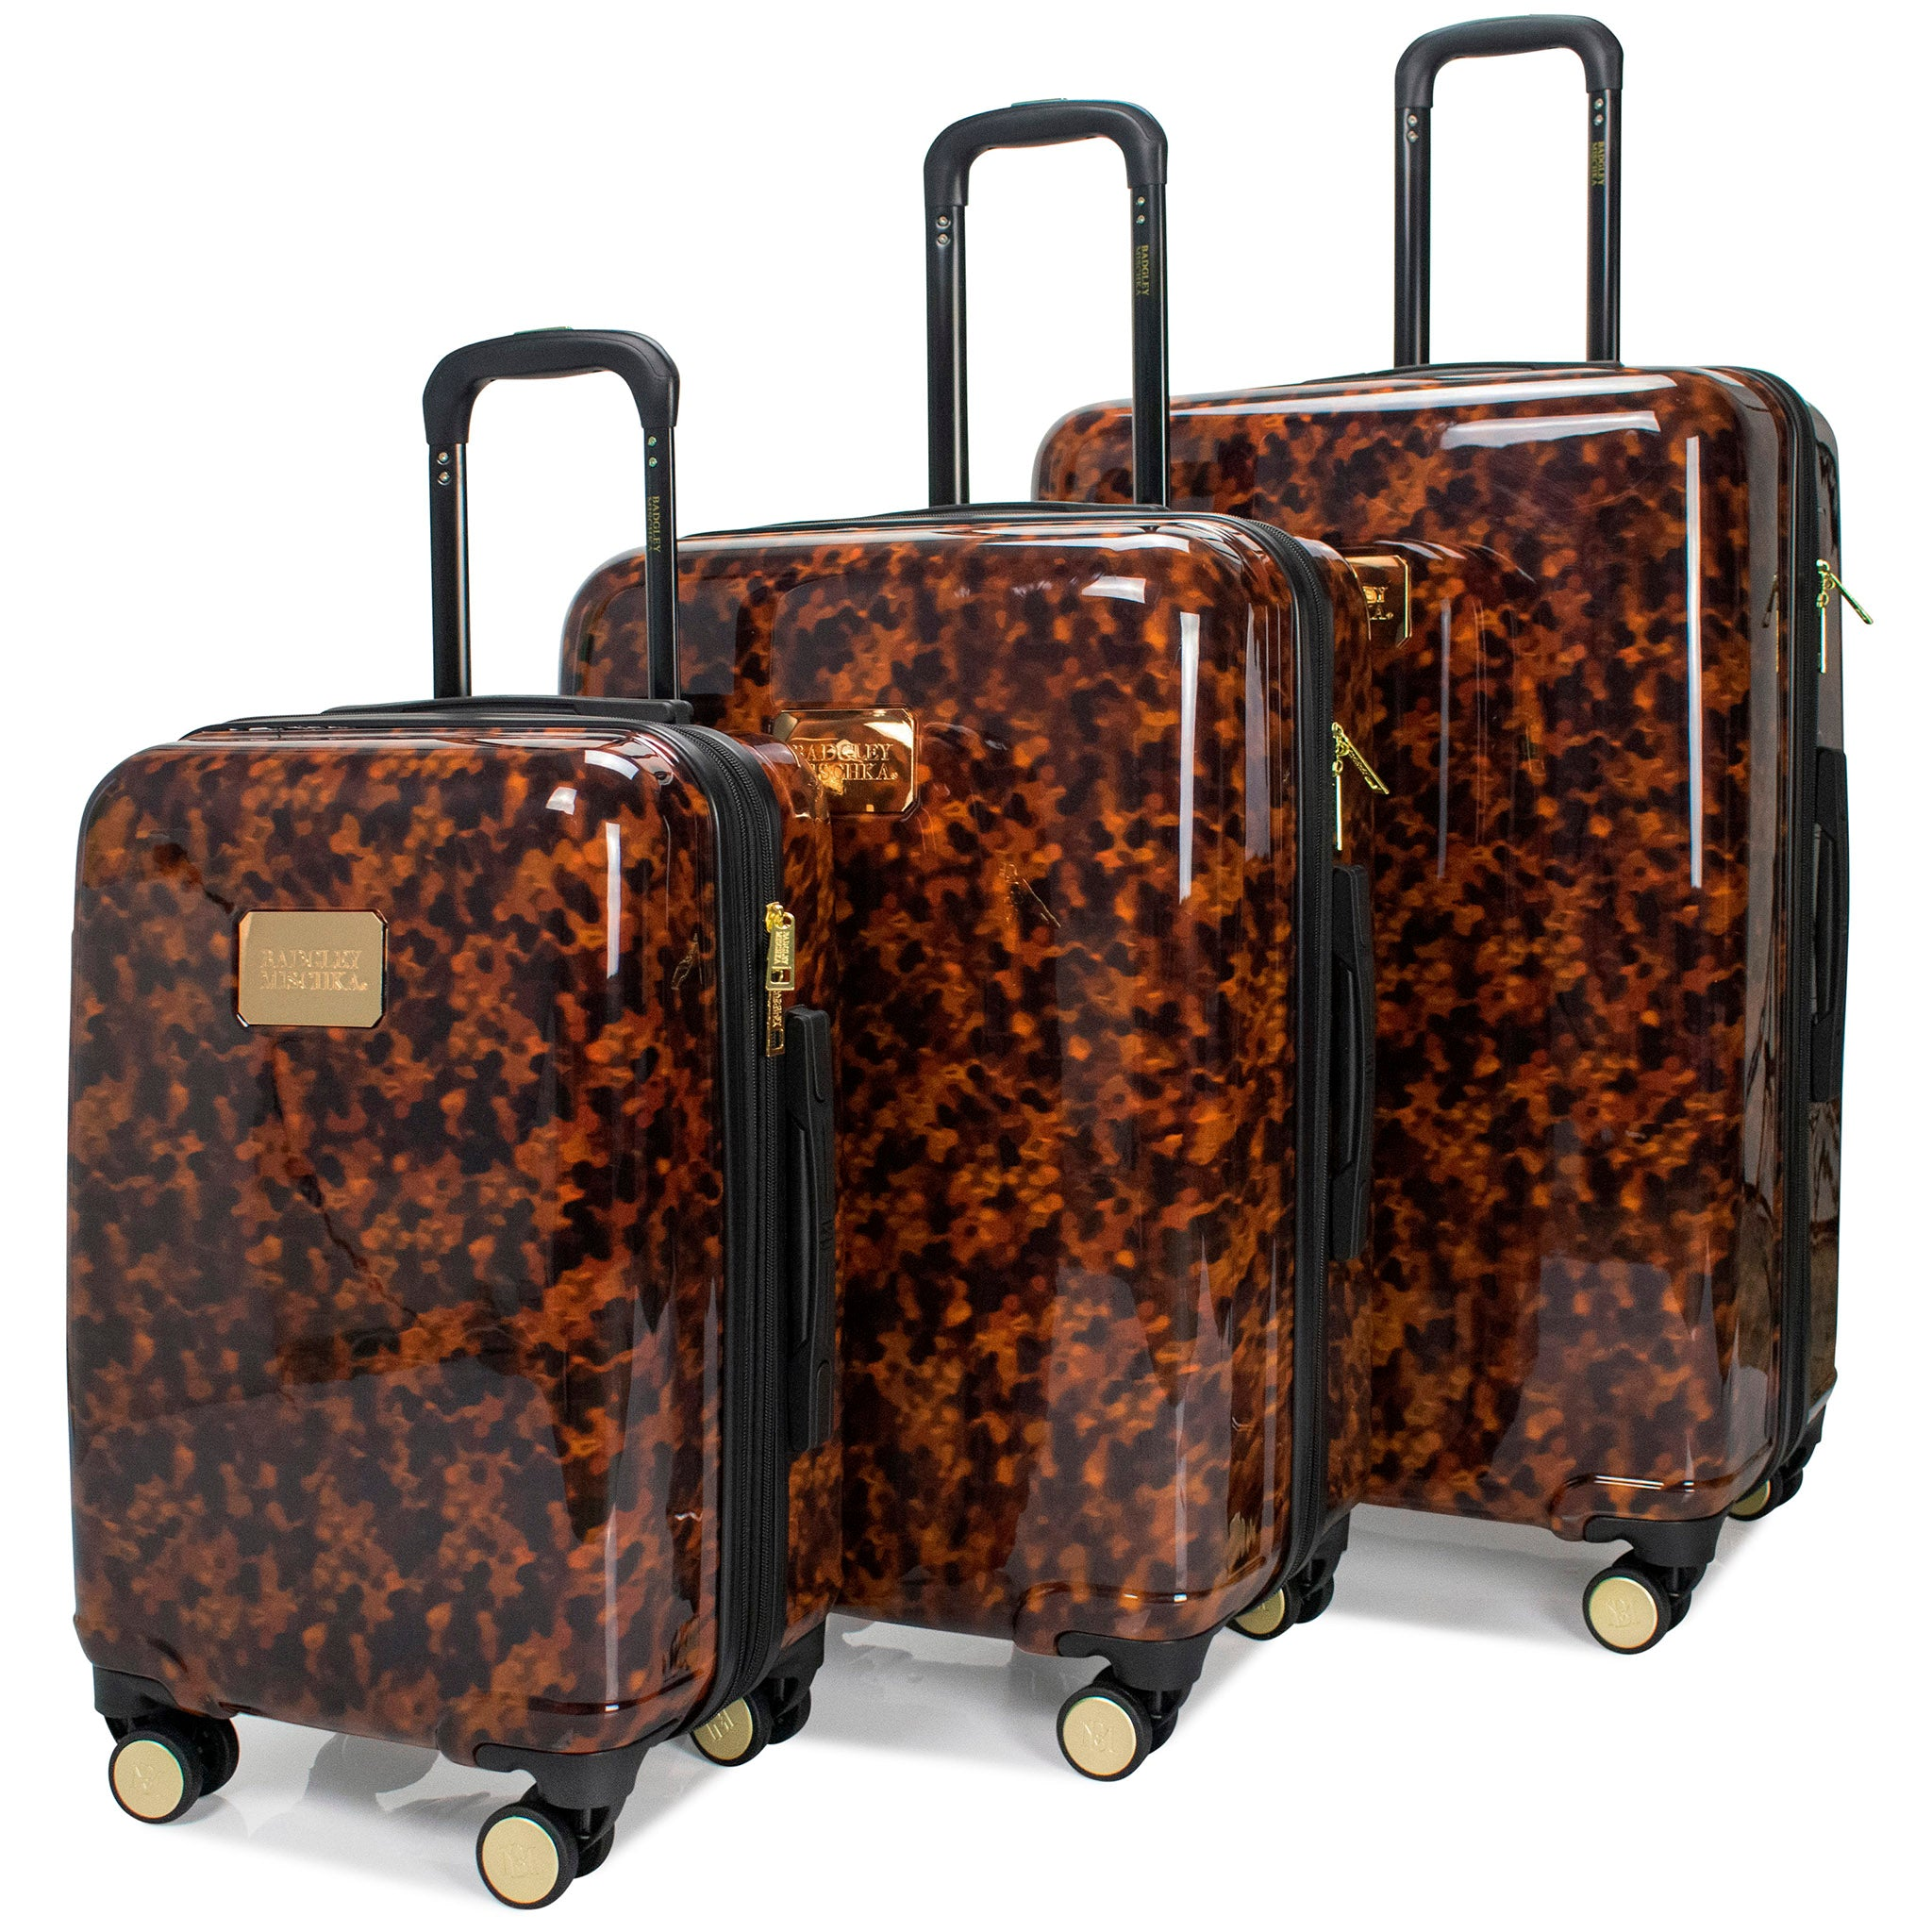 Essence 3 Piece Hard Luggage Set (Tortoise)